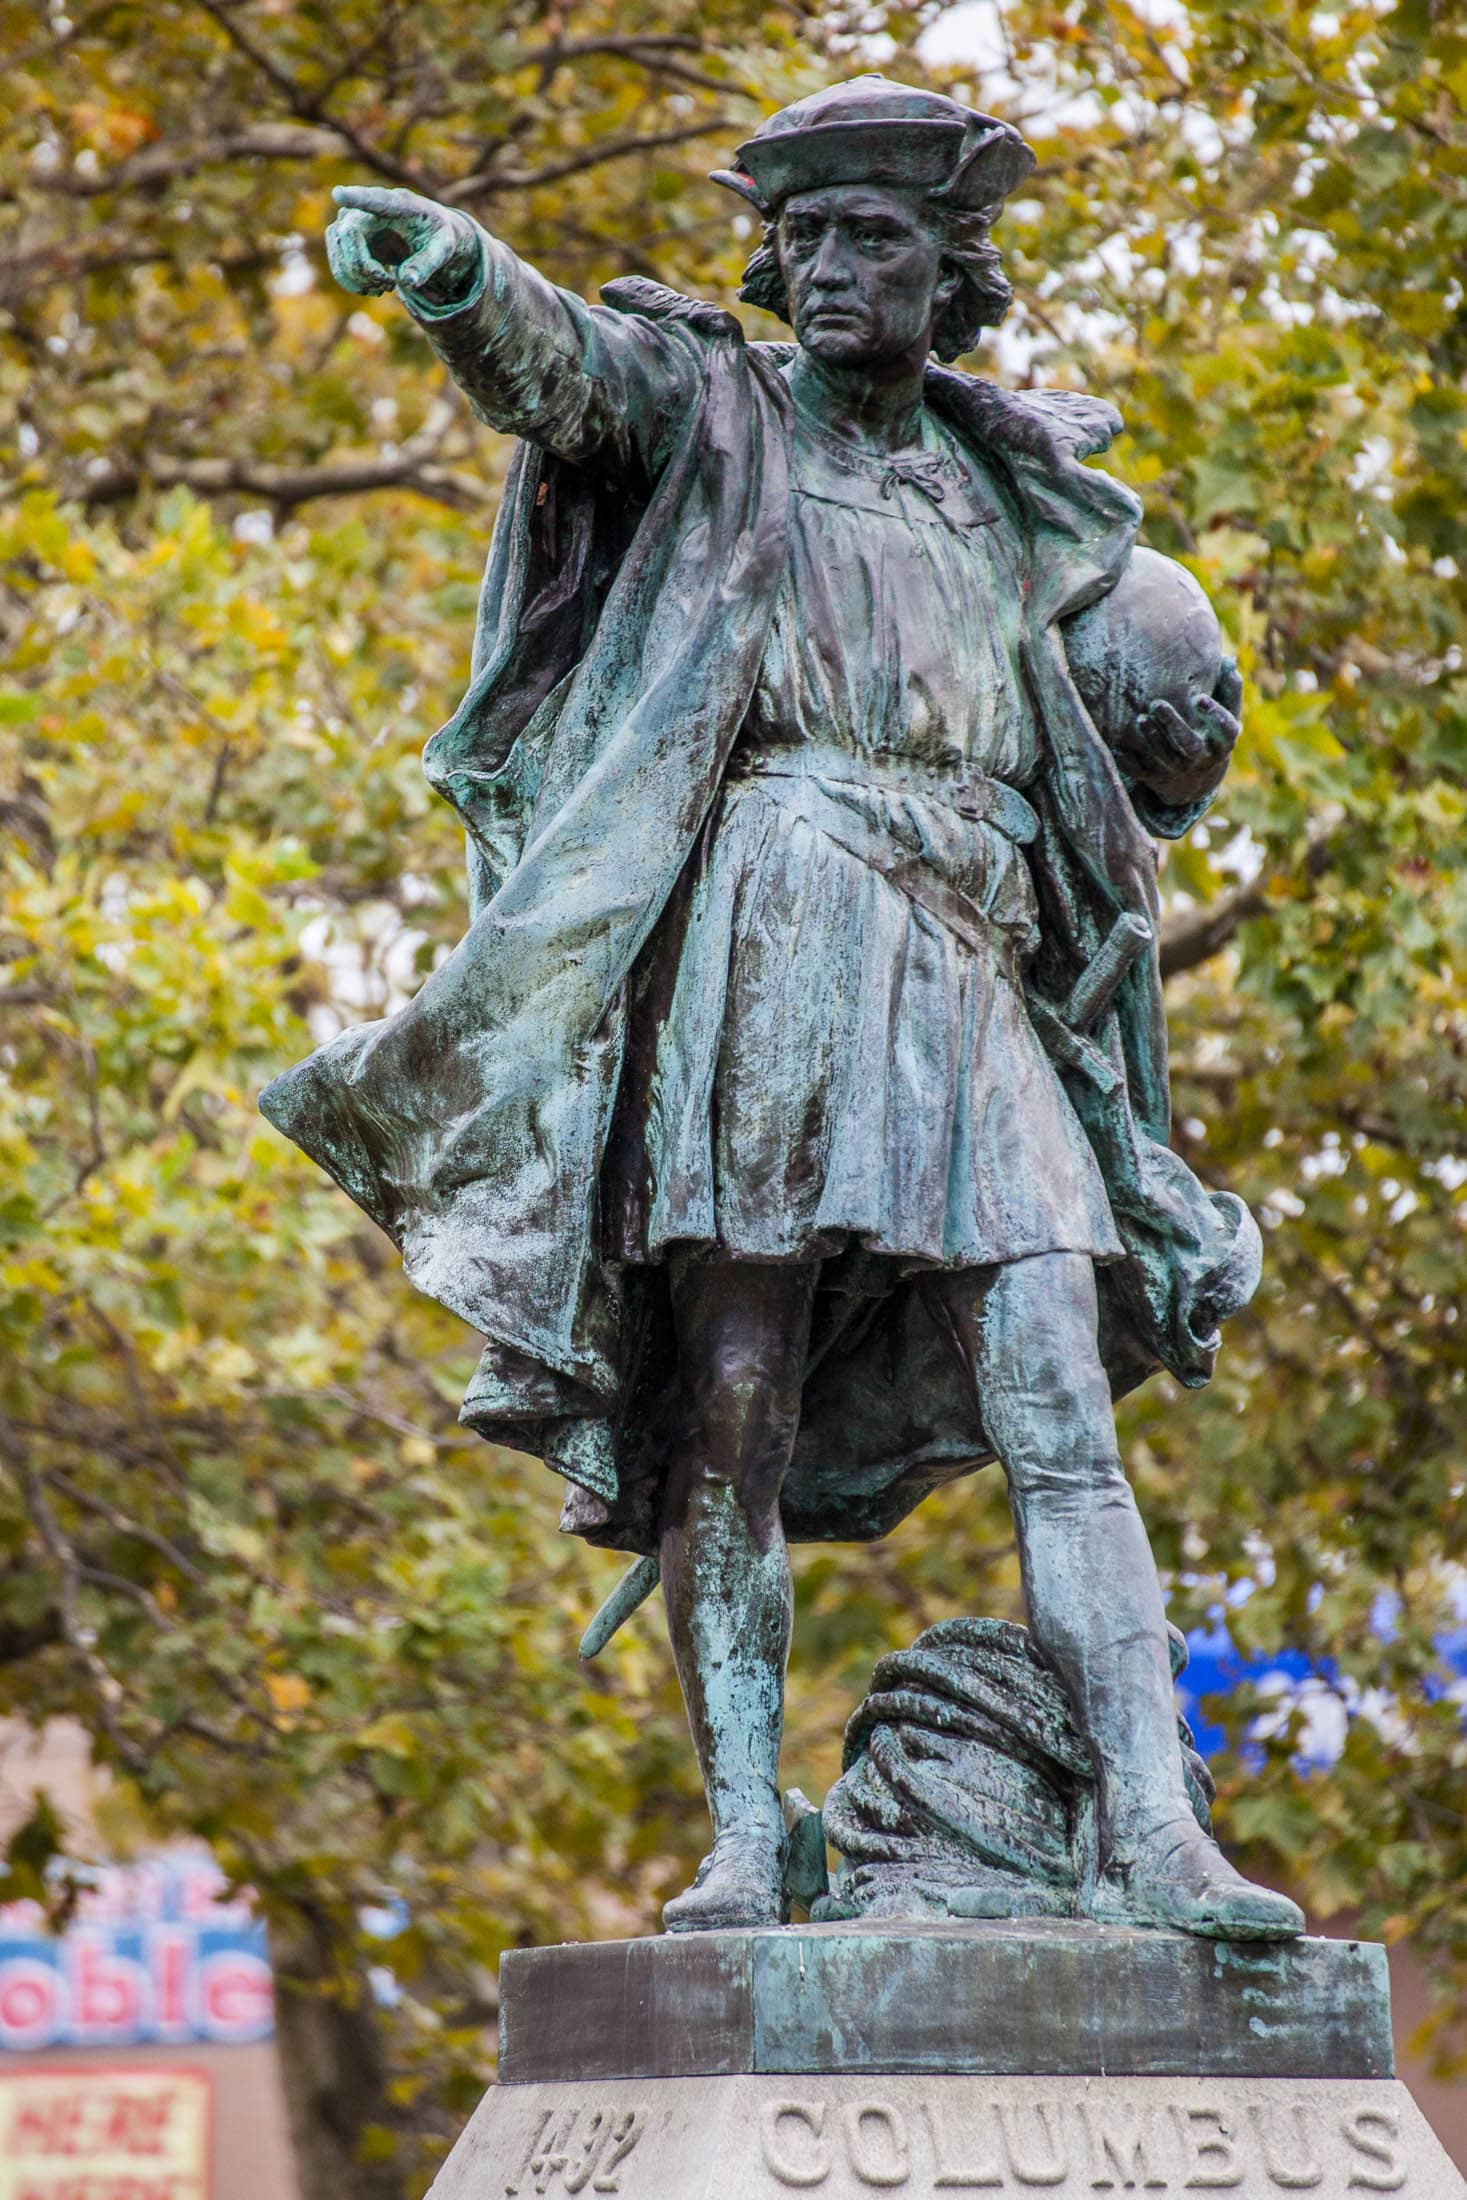 christopher columbus statues being vandalized